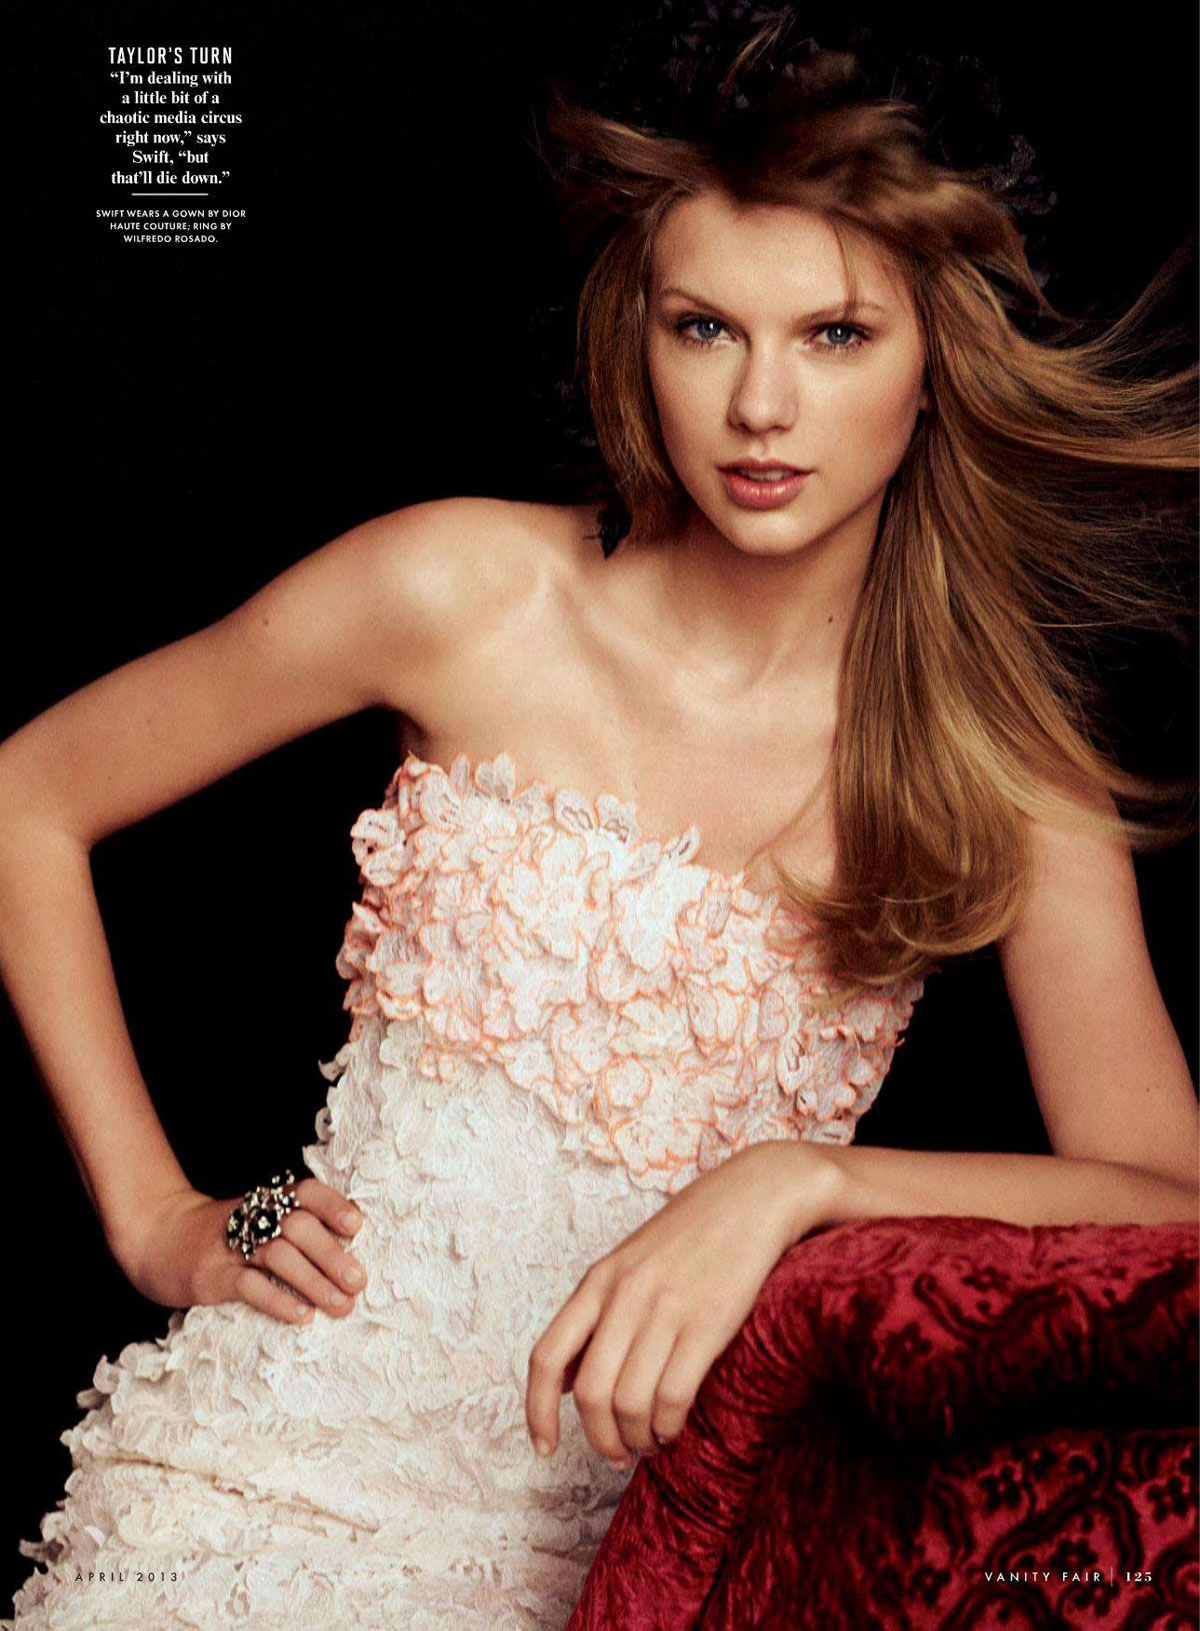 ��� ������ ����� ��� ���� ���� ������ ��� 2013 -  TAYLOR SWIFT in Vanity Fair Magazine April 2013 Issue